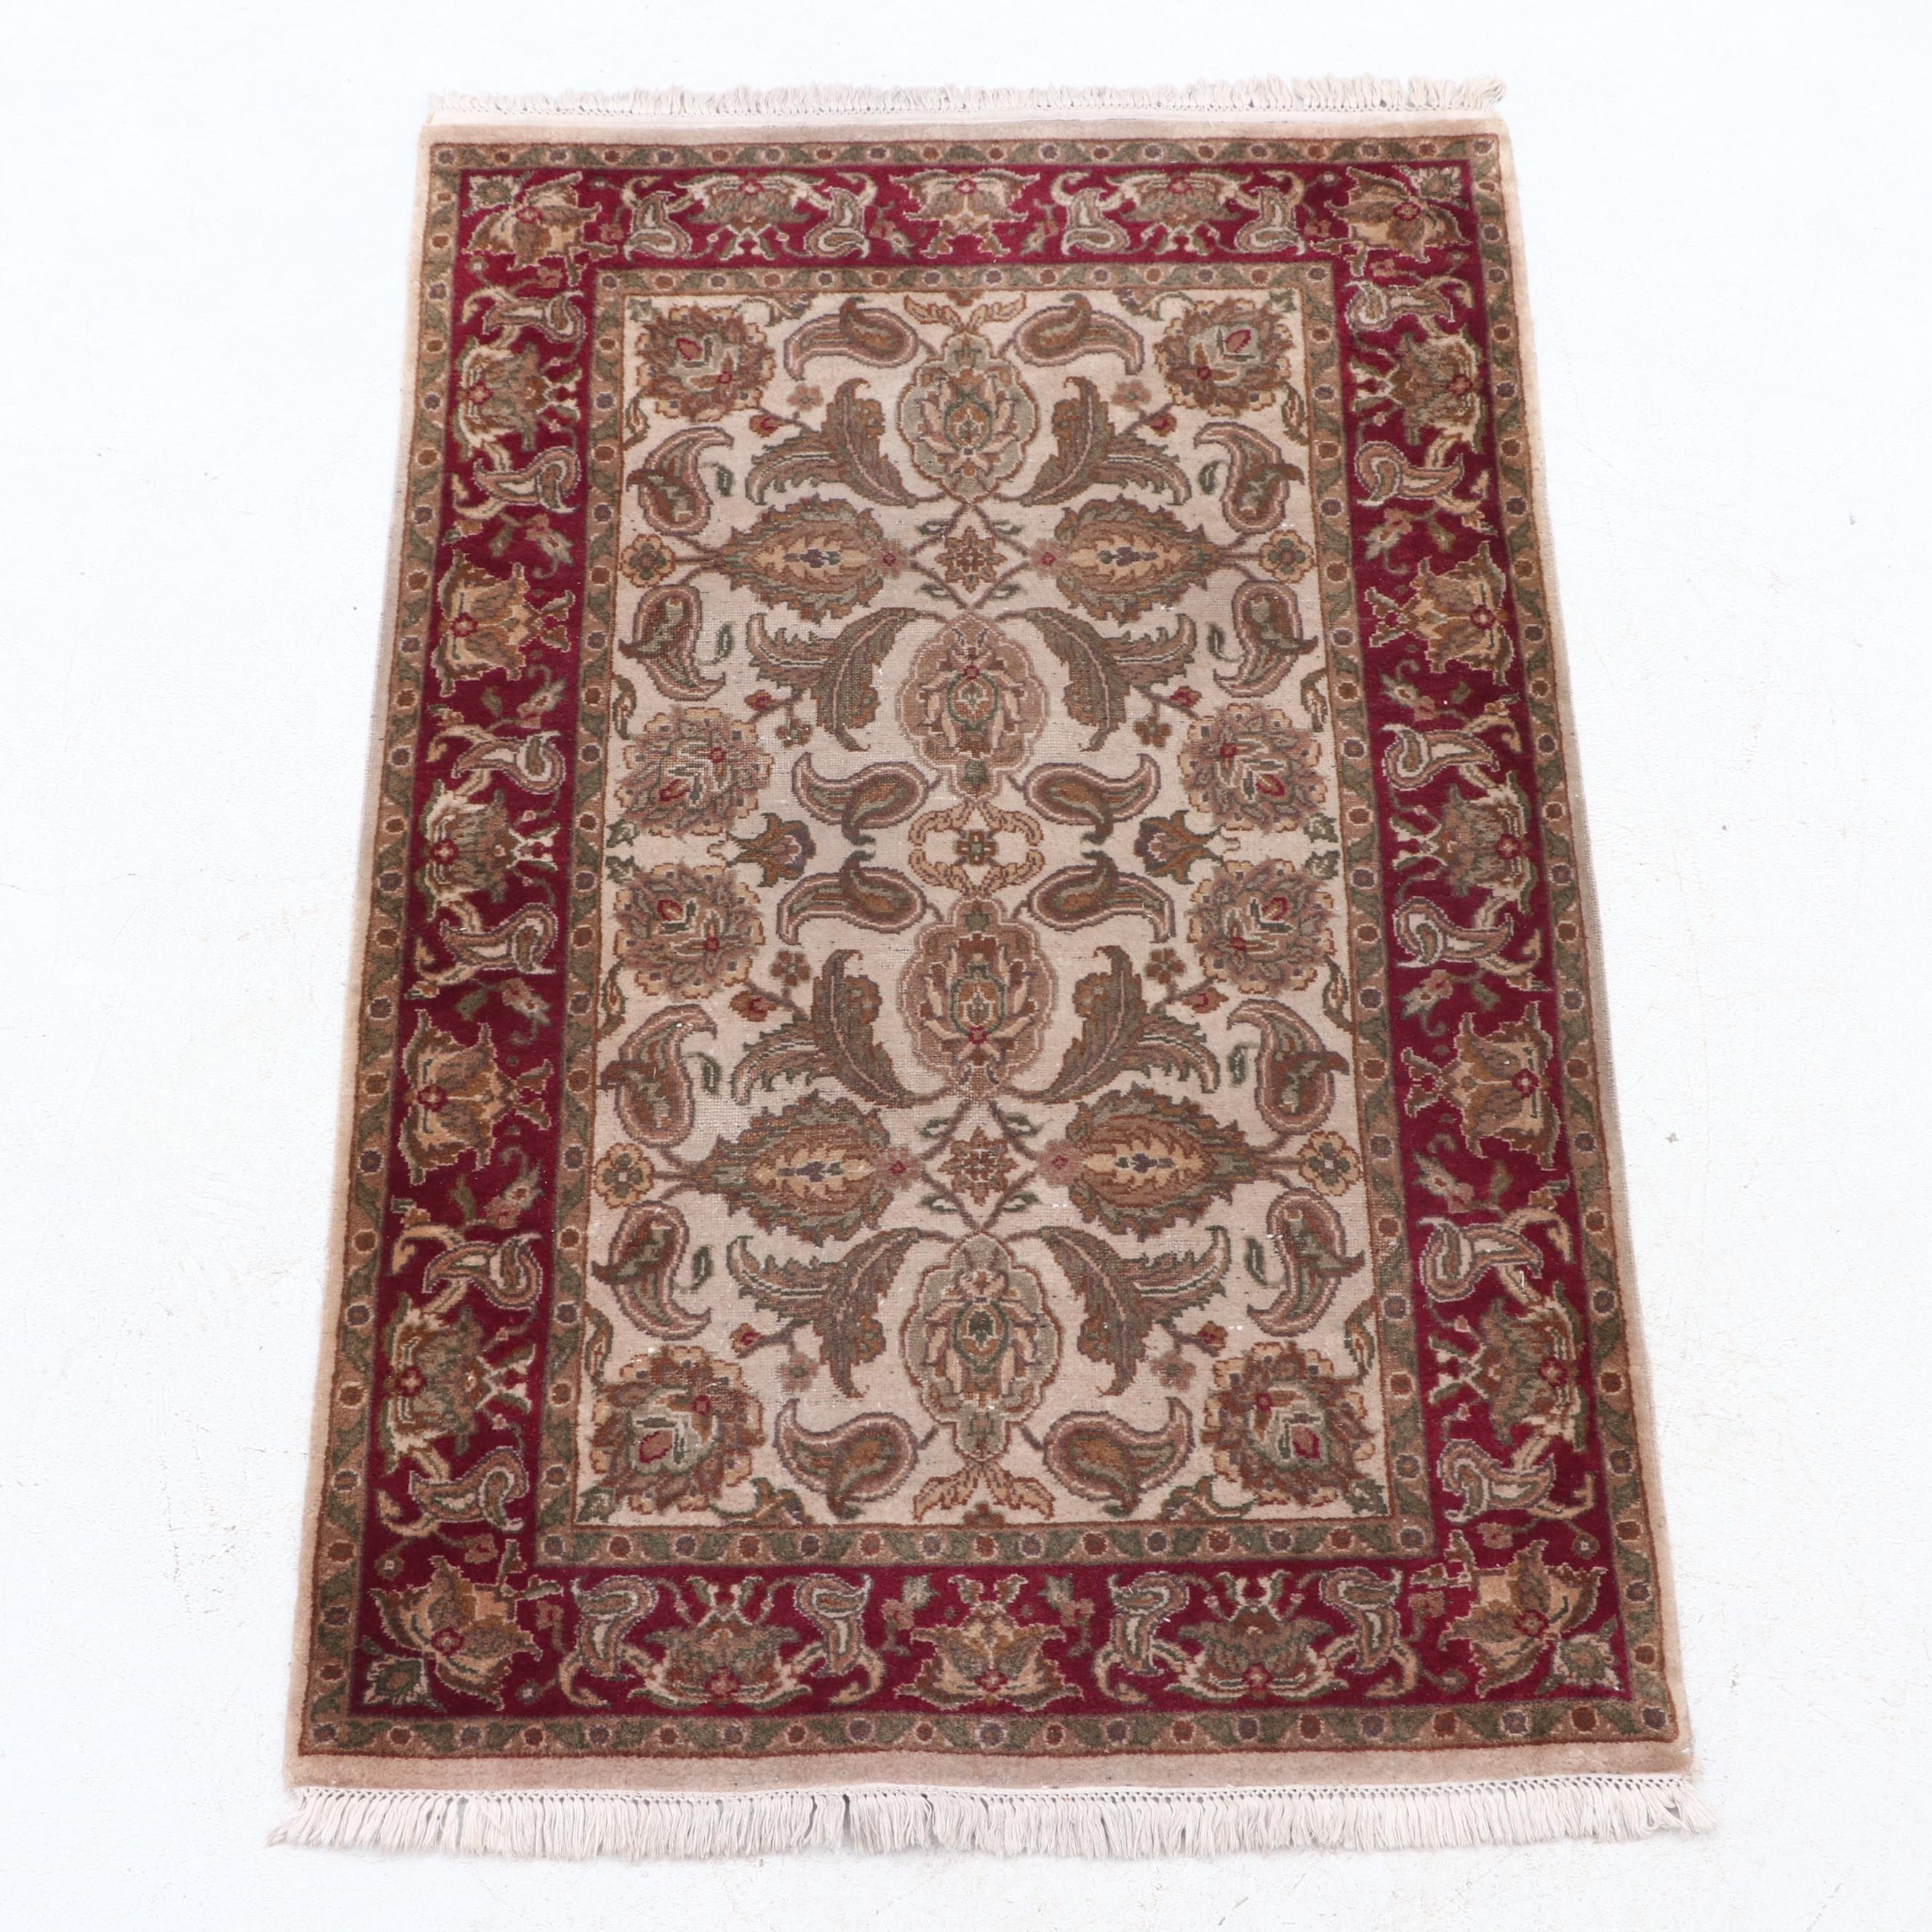 Newton Oriental Rugs Hand-Knotted Indian Wool Area Rug